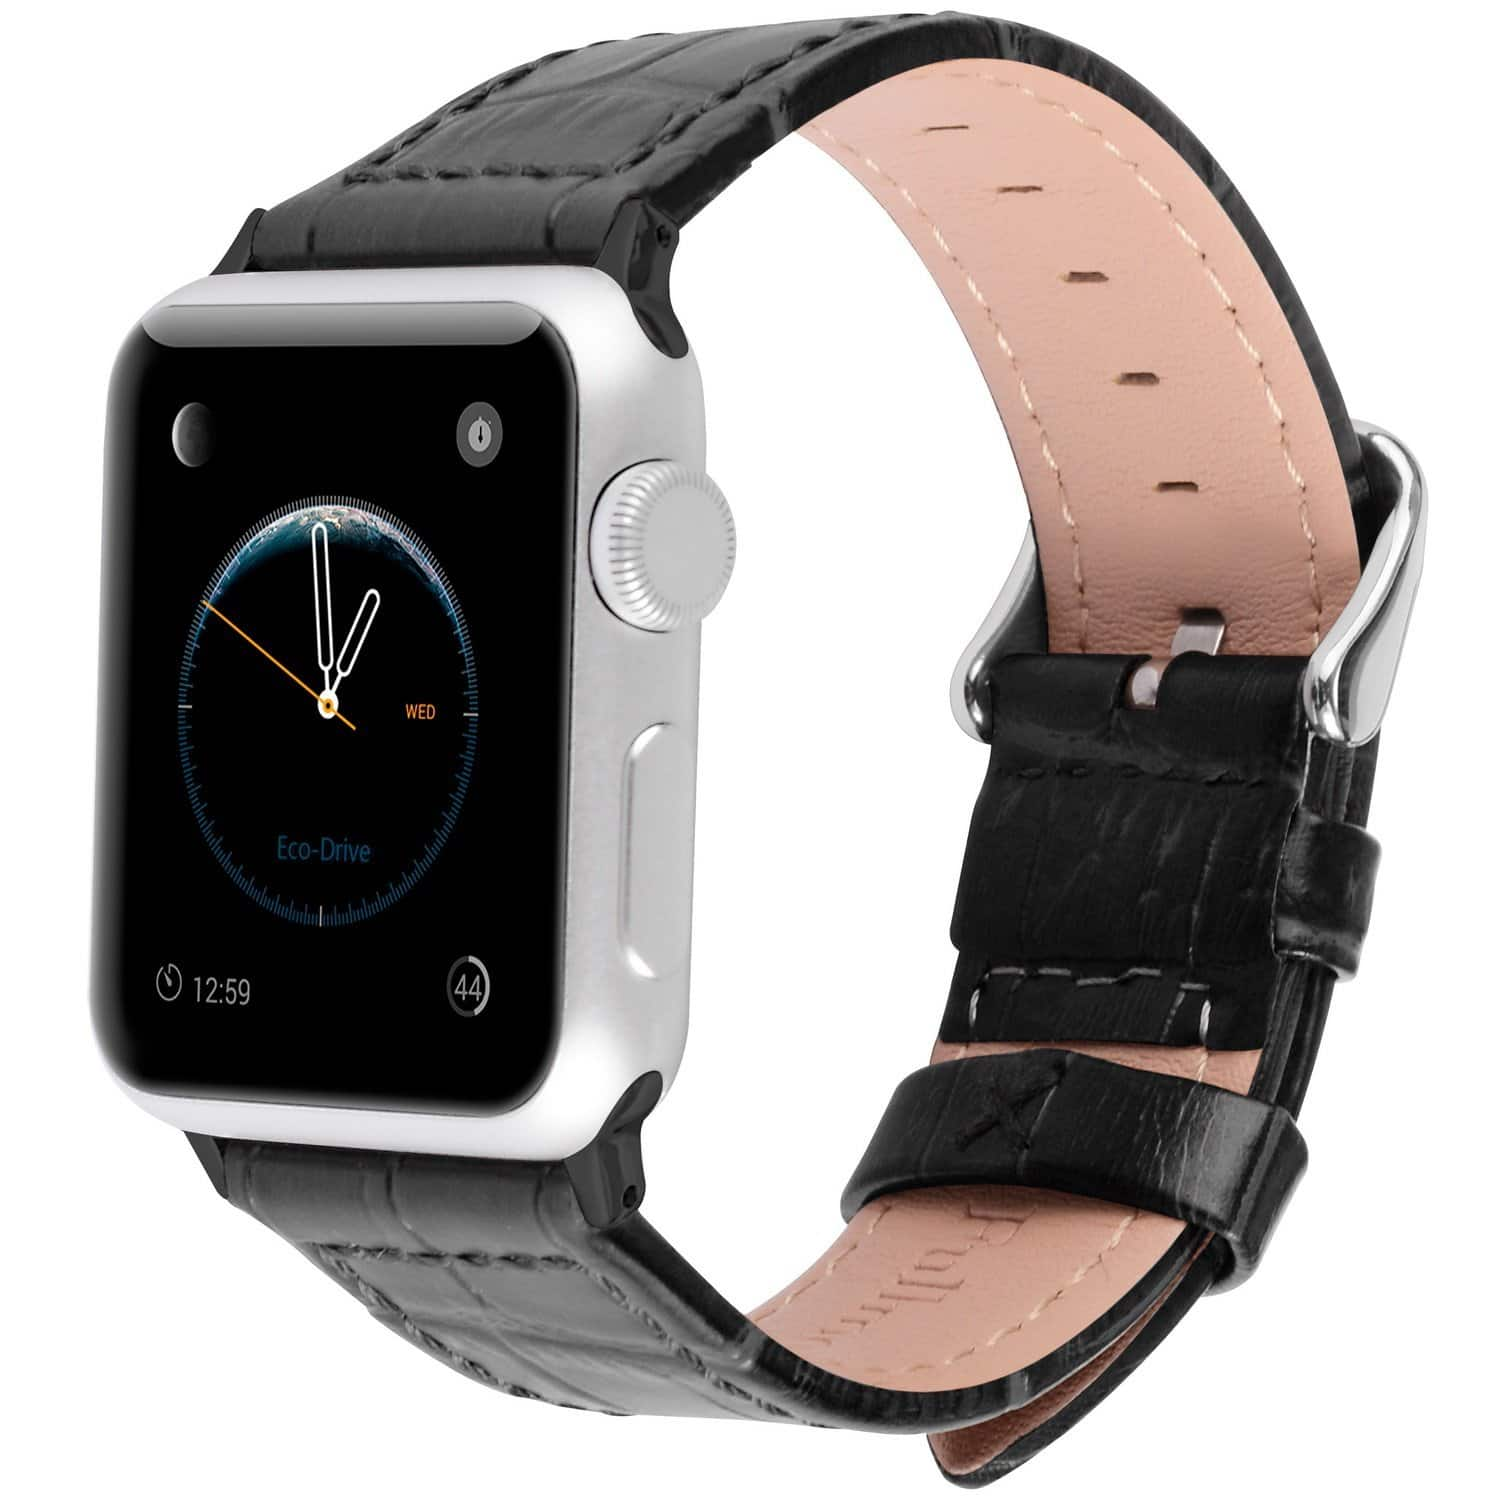 Apple Watch Black or Brown Leather Replacement Bands (38 & 42mm) $6.99 @ Amazon